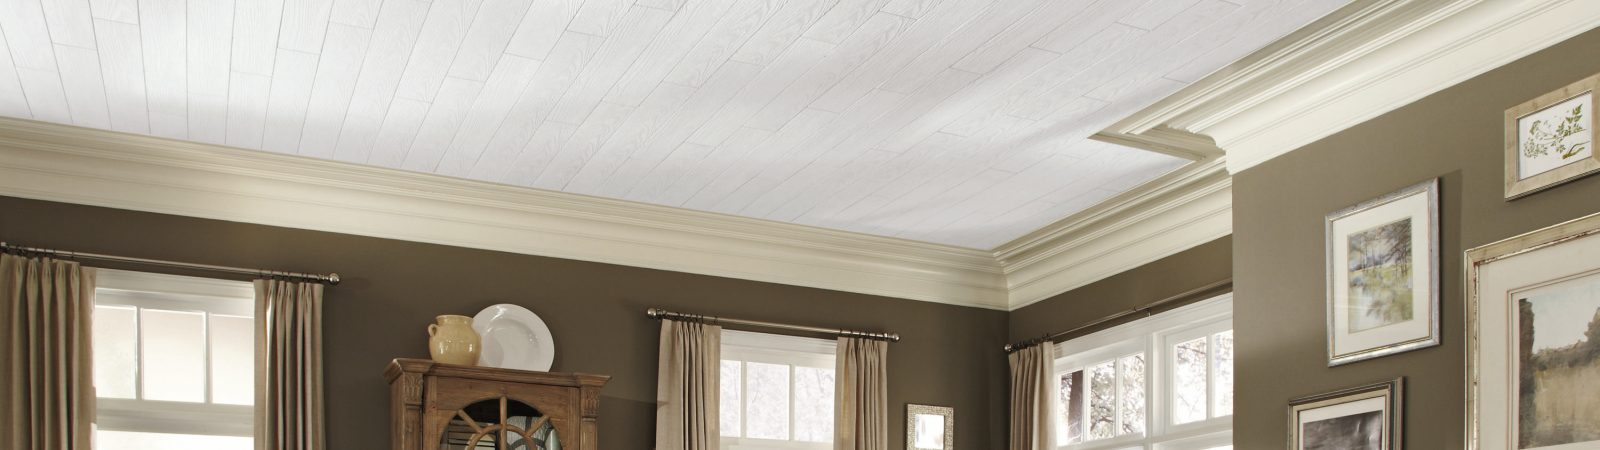 Easy Up Installation System Armstrong Ceilings Residential